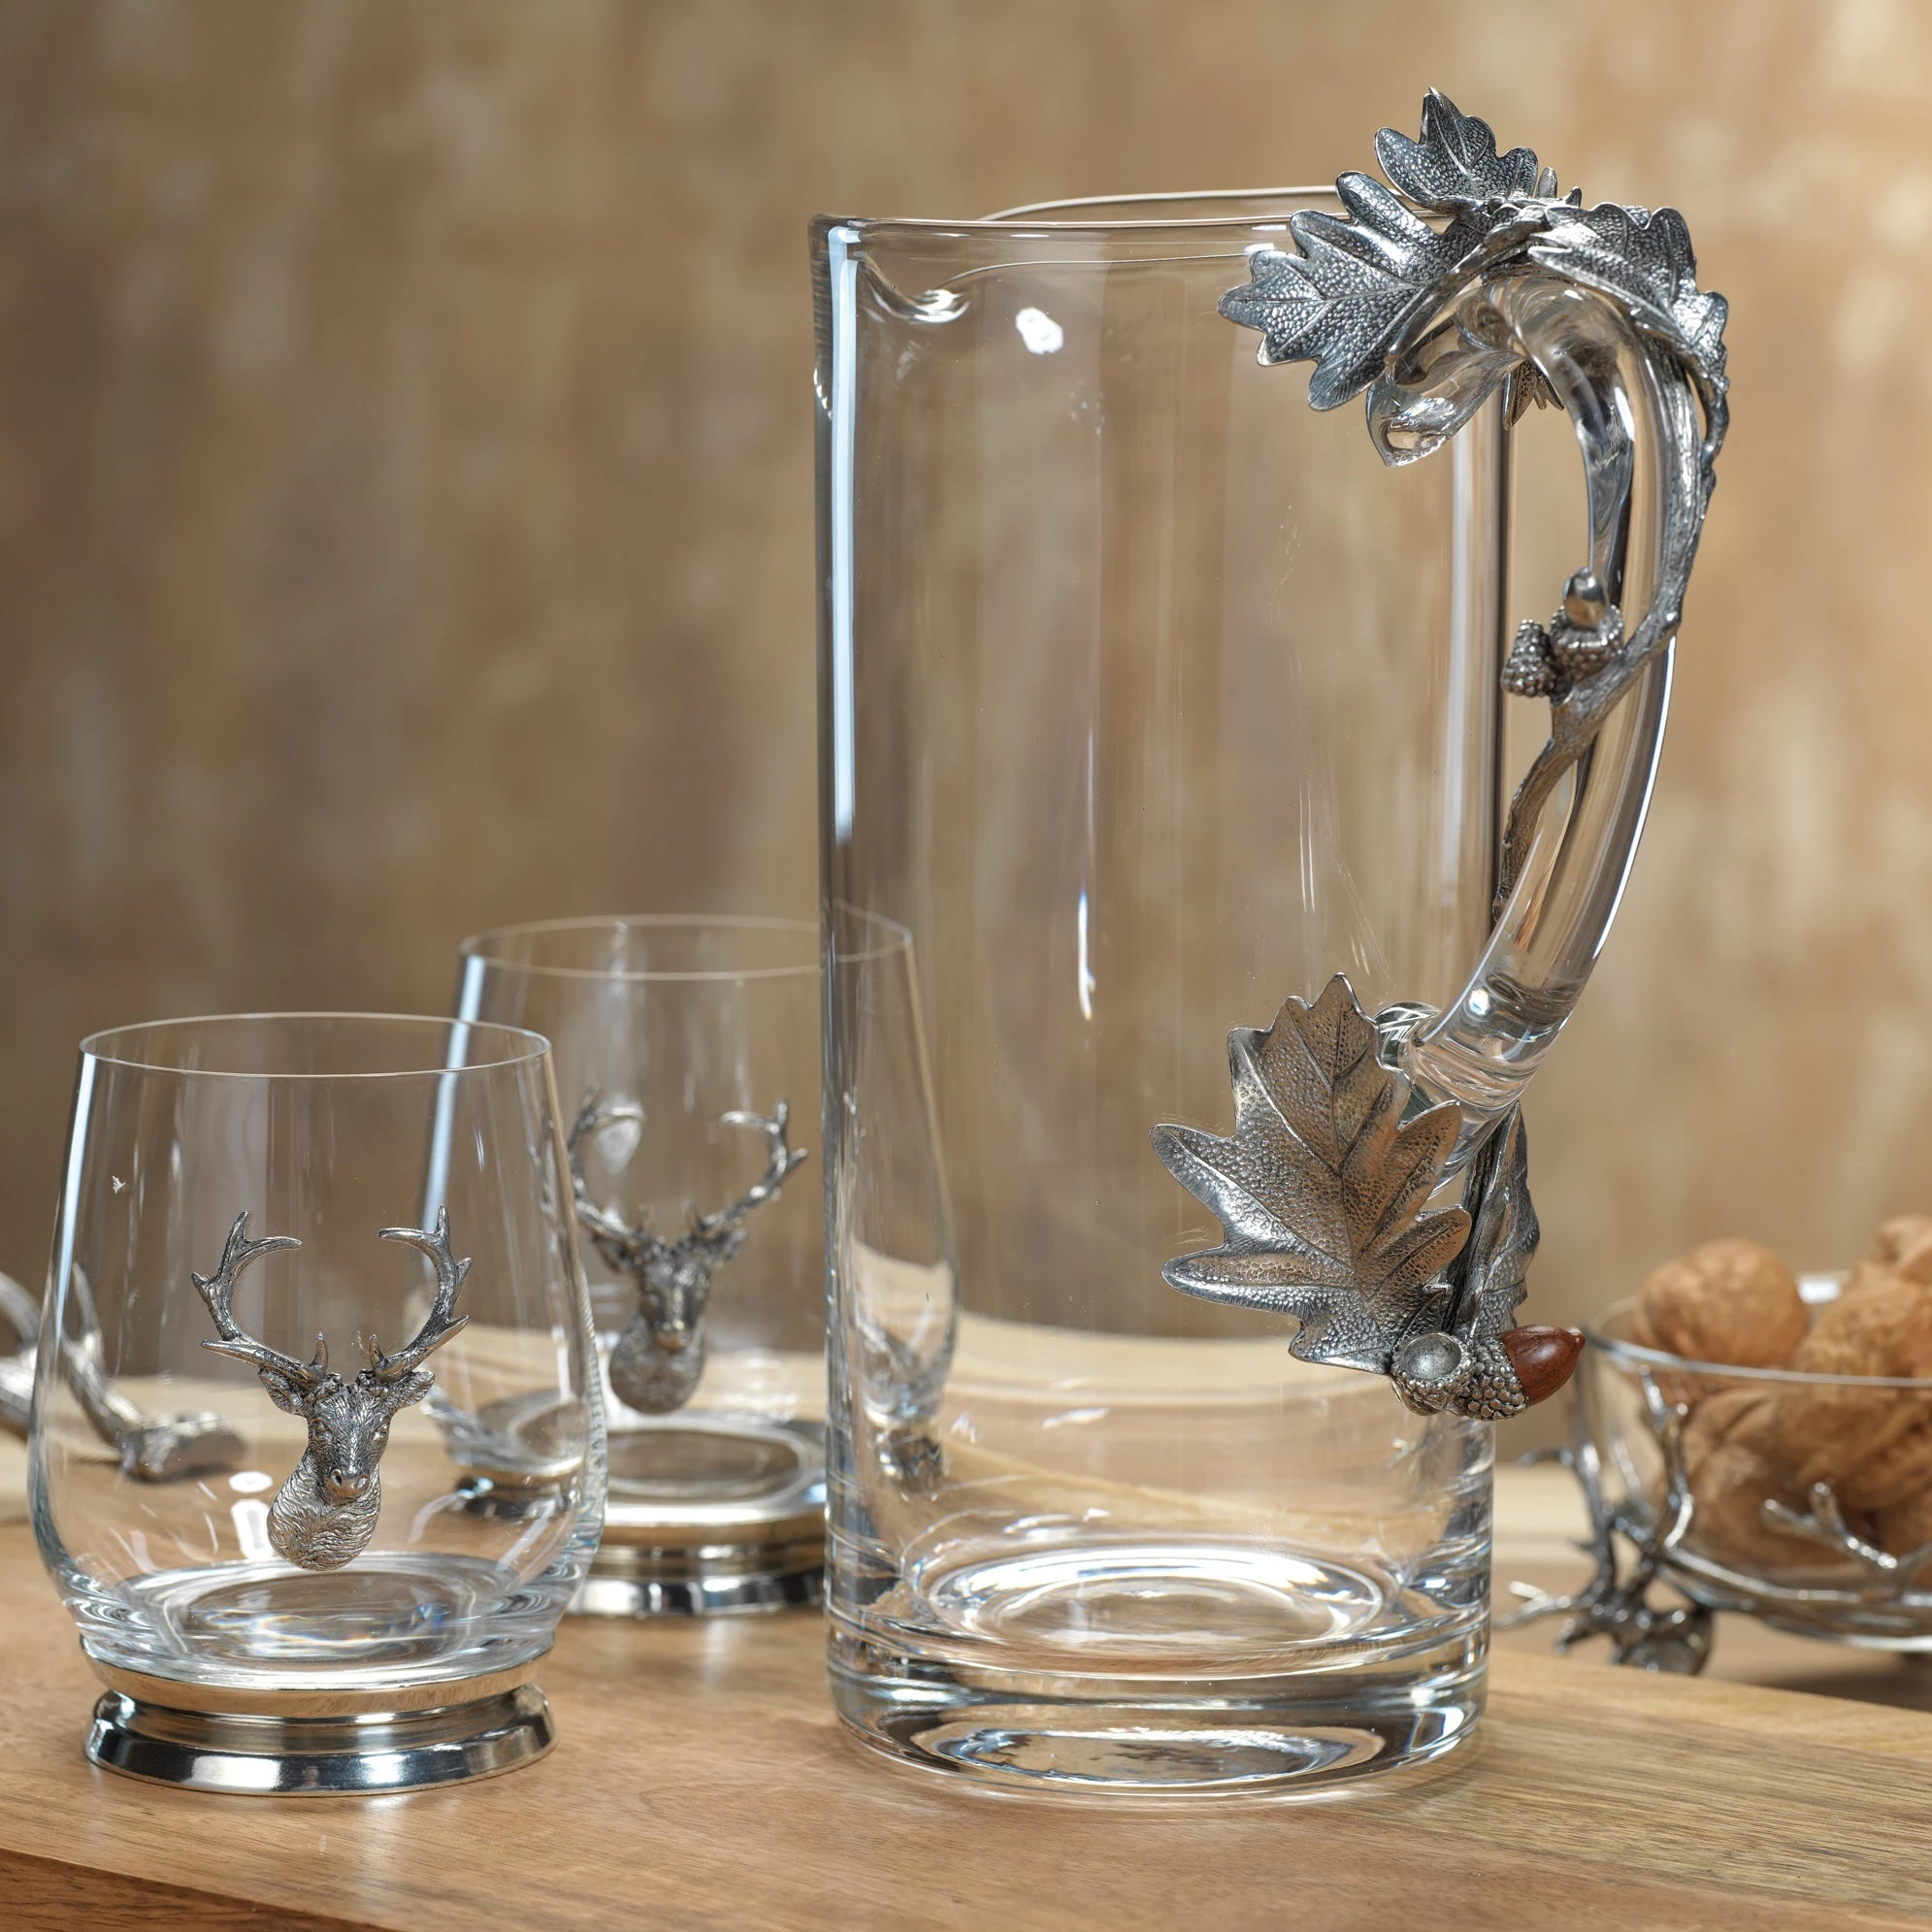 St. Anton Pewter and Glass Pitcher and Tumblers - CARLYLE AVENUE